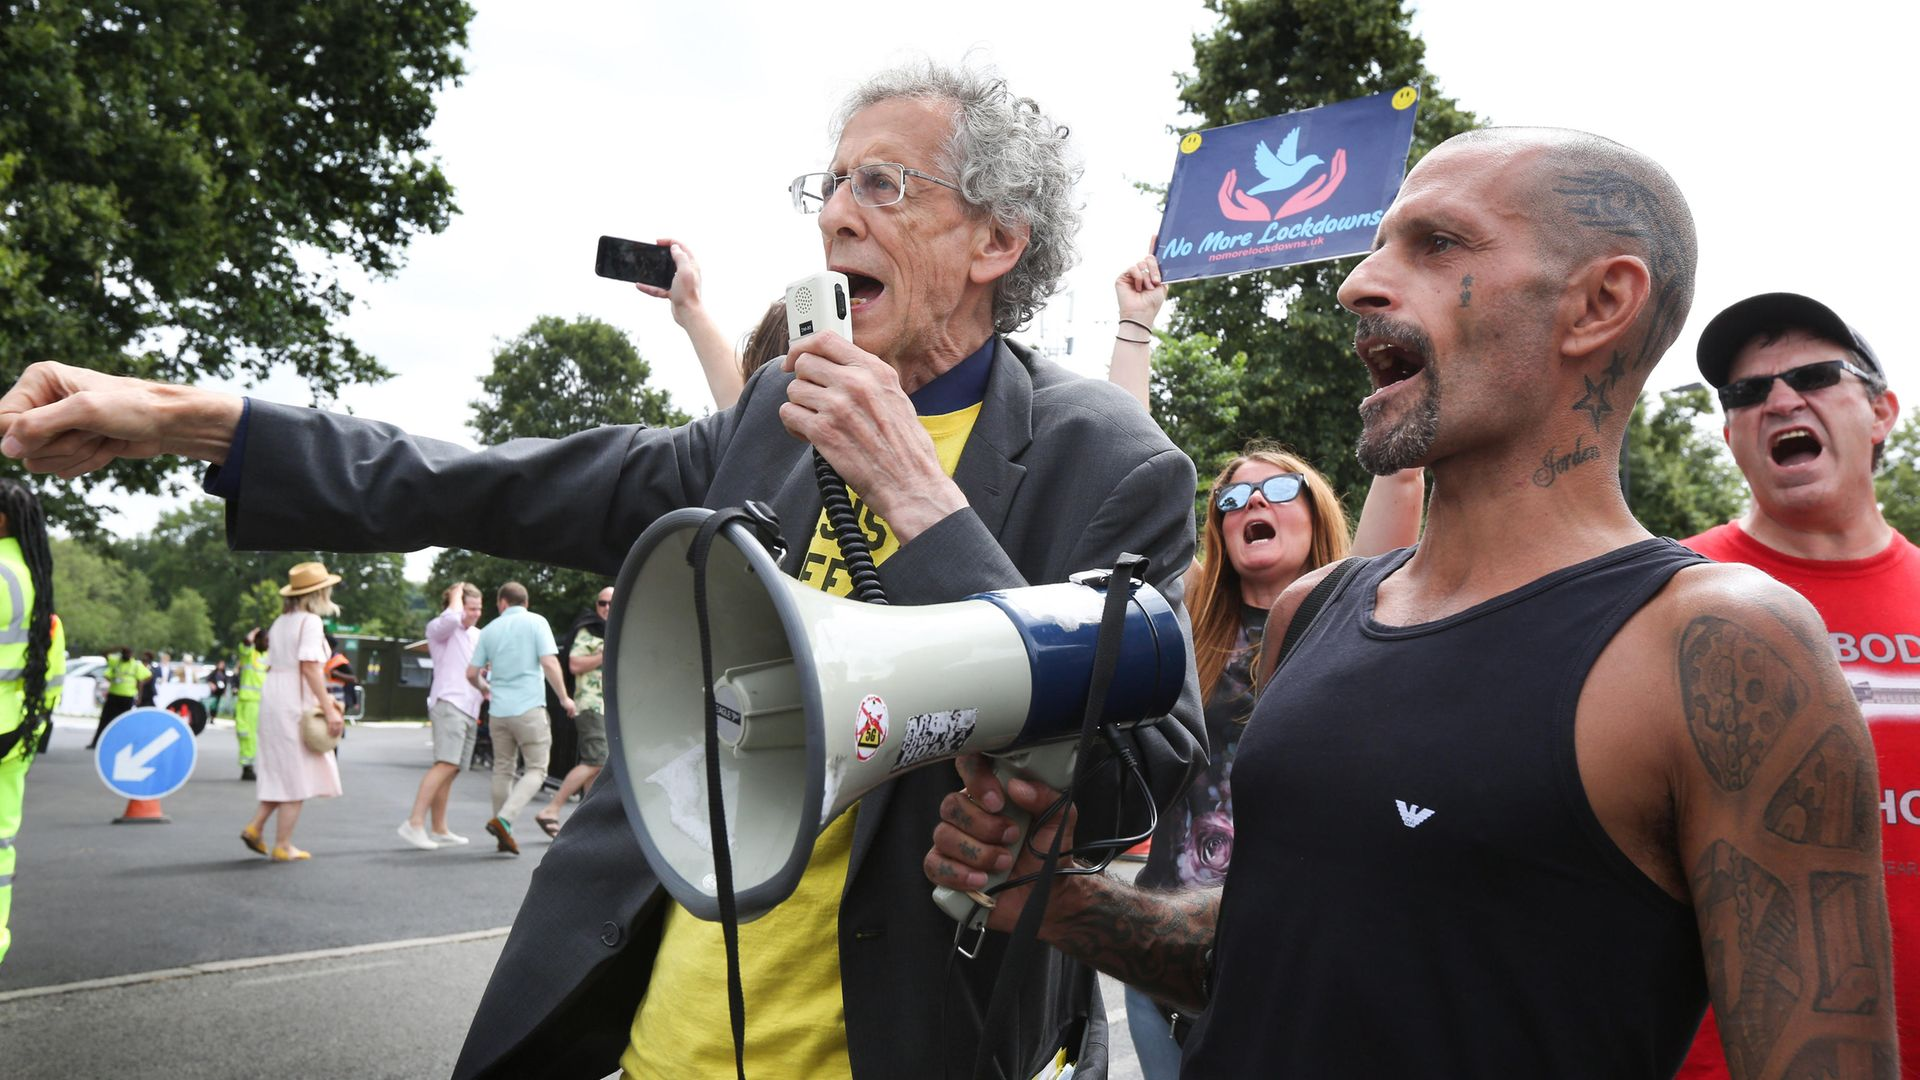 Anti-vaccine protestor Piers Corbyn speaks through a megaphone outside Centre Court on Wimbledon's Men's Finals Day - Credit: Photo by Martin Pope/SOPA Images/LightRocket via Getty Images